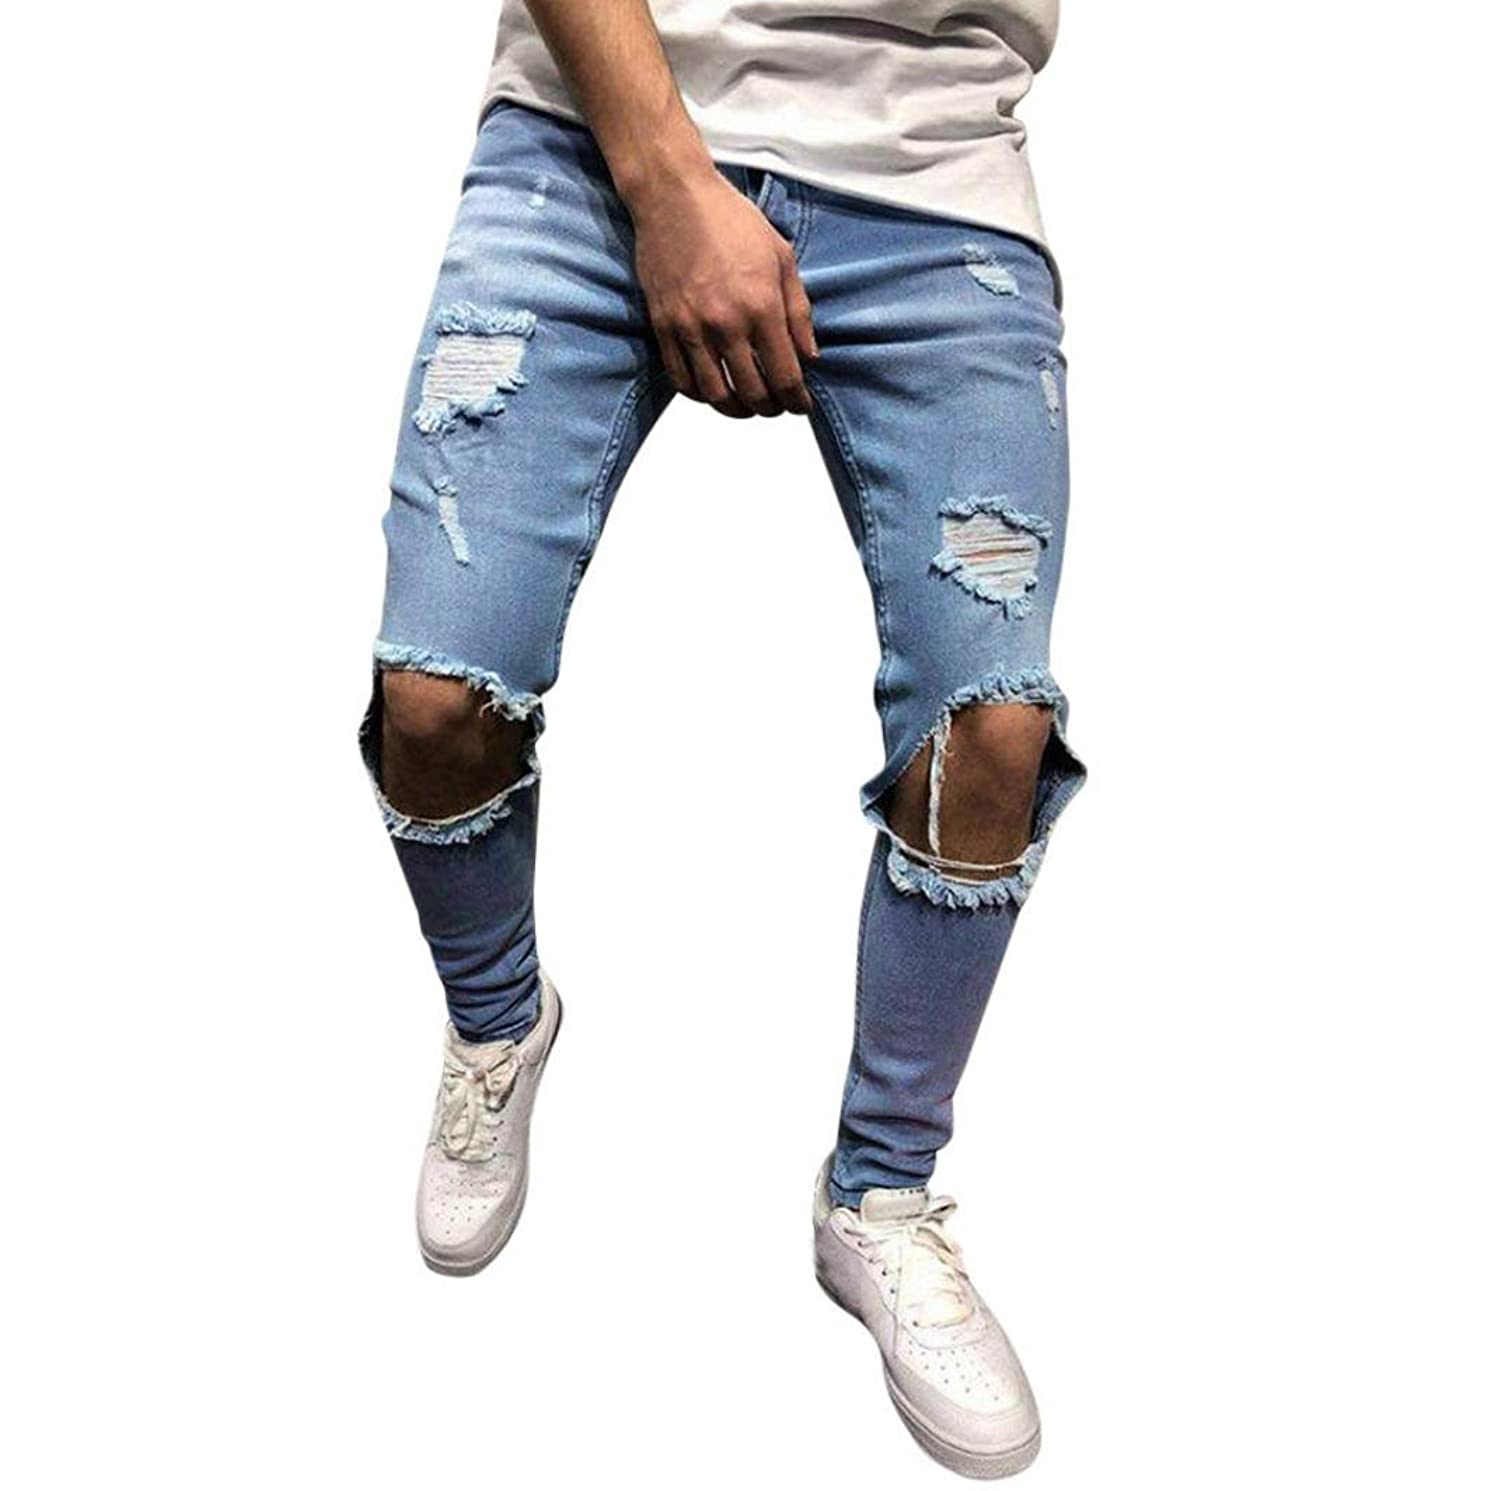 Willsa Men's Pants, Skinny Stretch Denim Pants Distressed Ripped Freyed Slim Fit Jeans Trousers